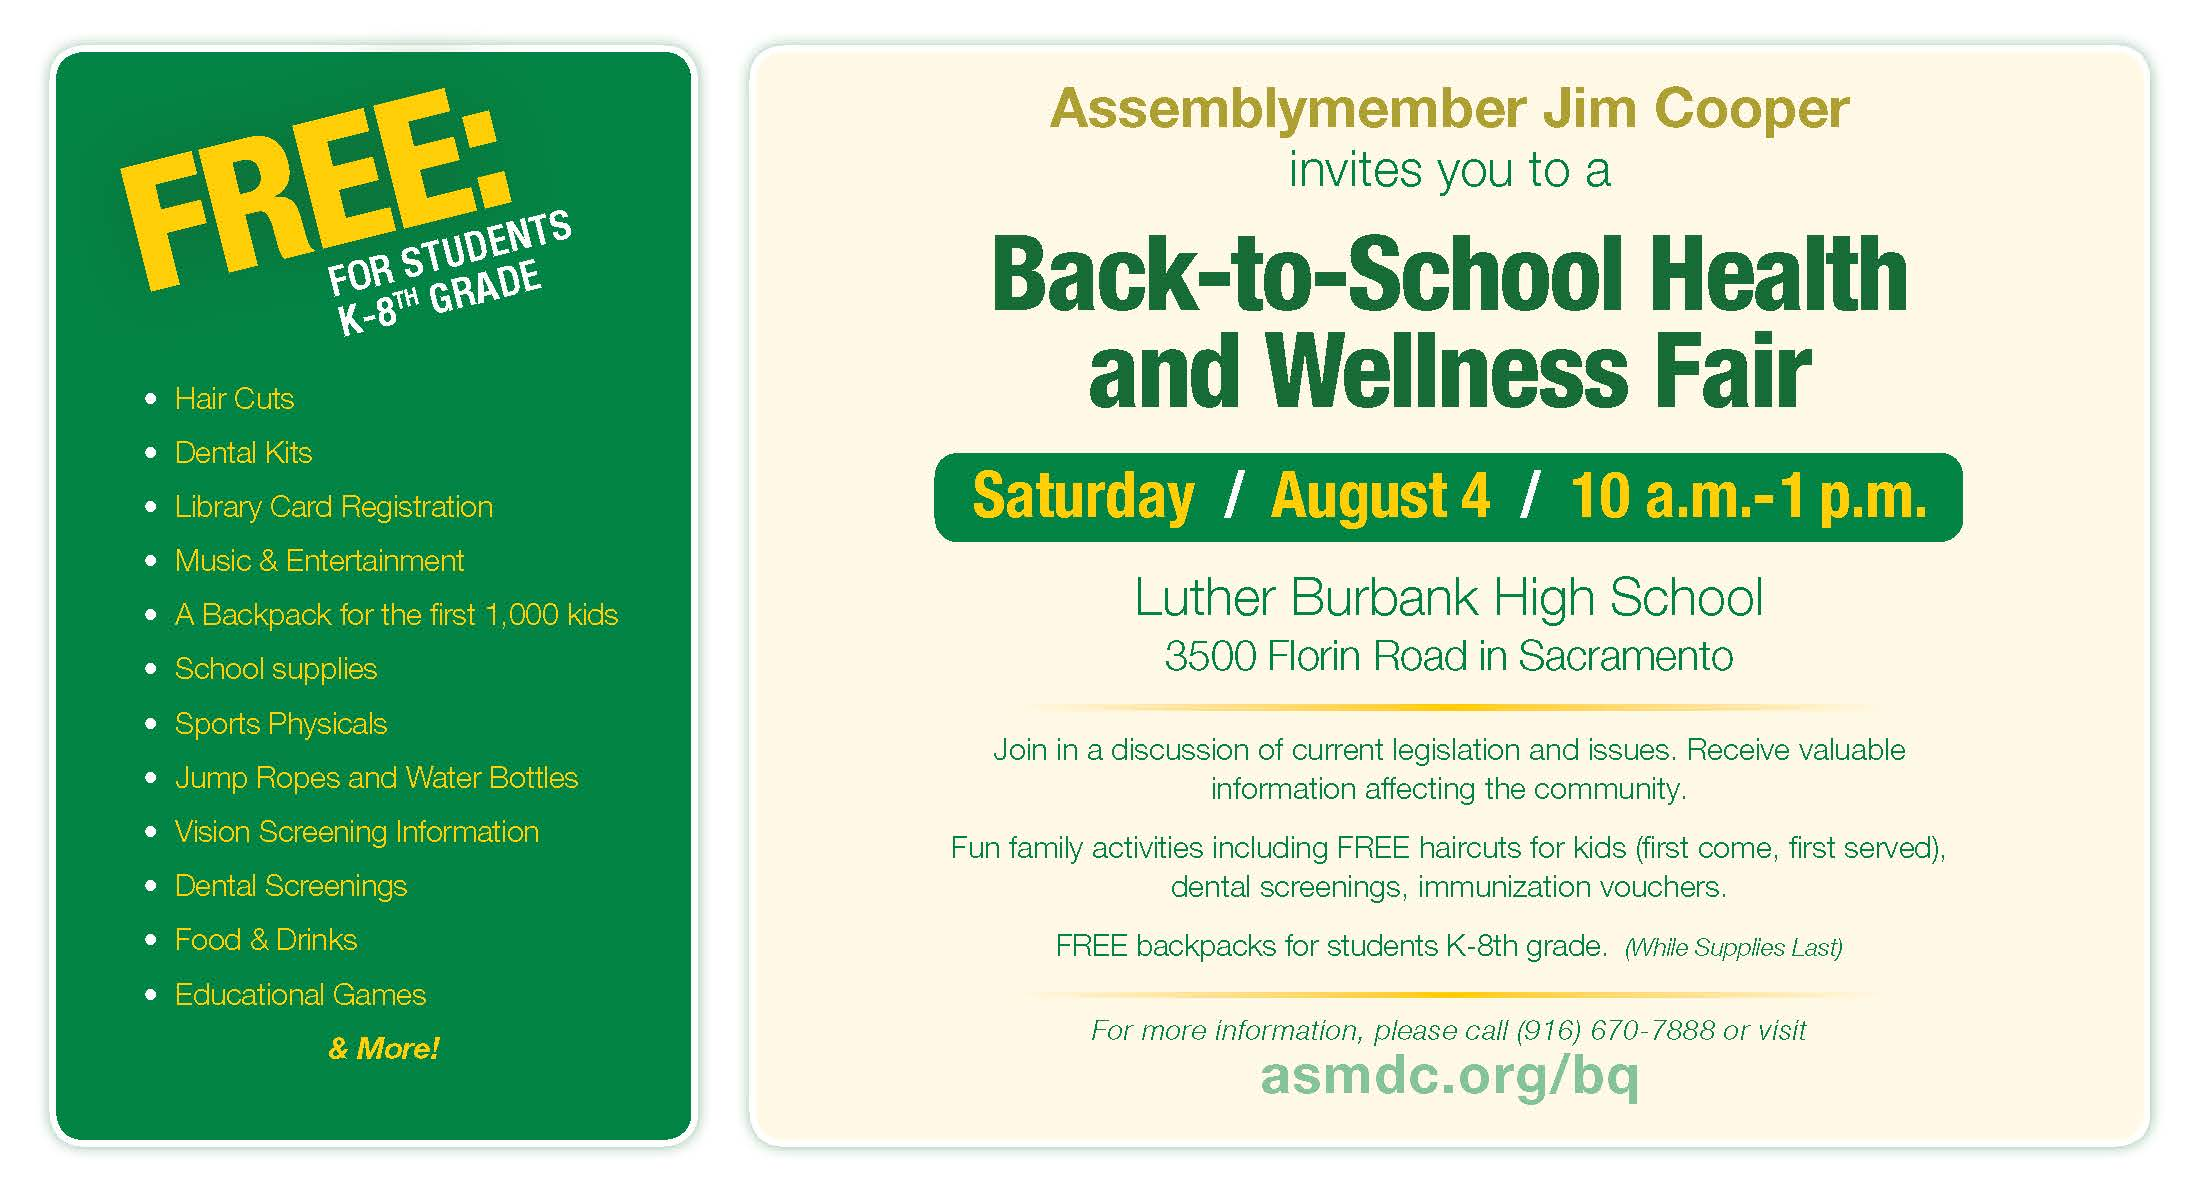 Back-to-School Health and Wellness Fair | Official Website